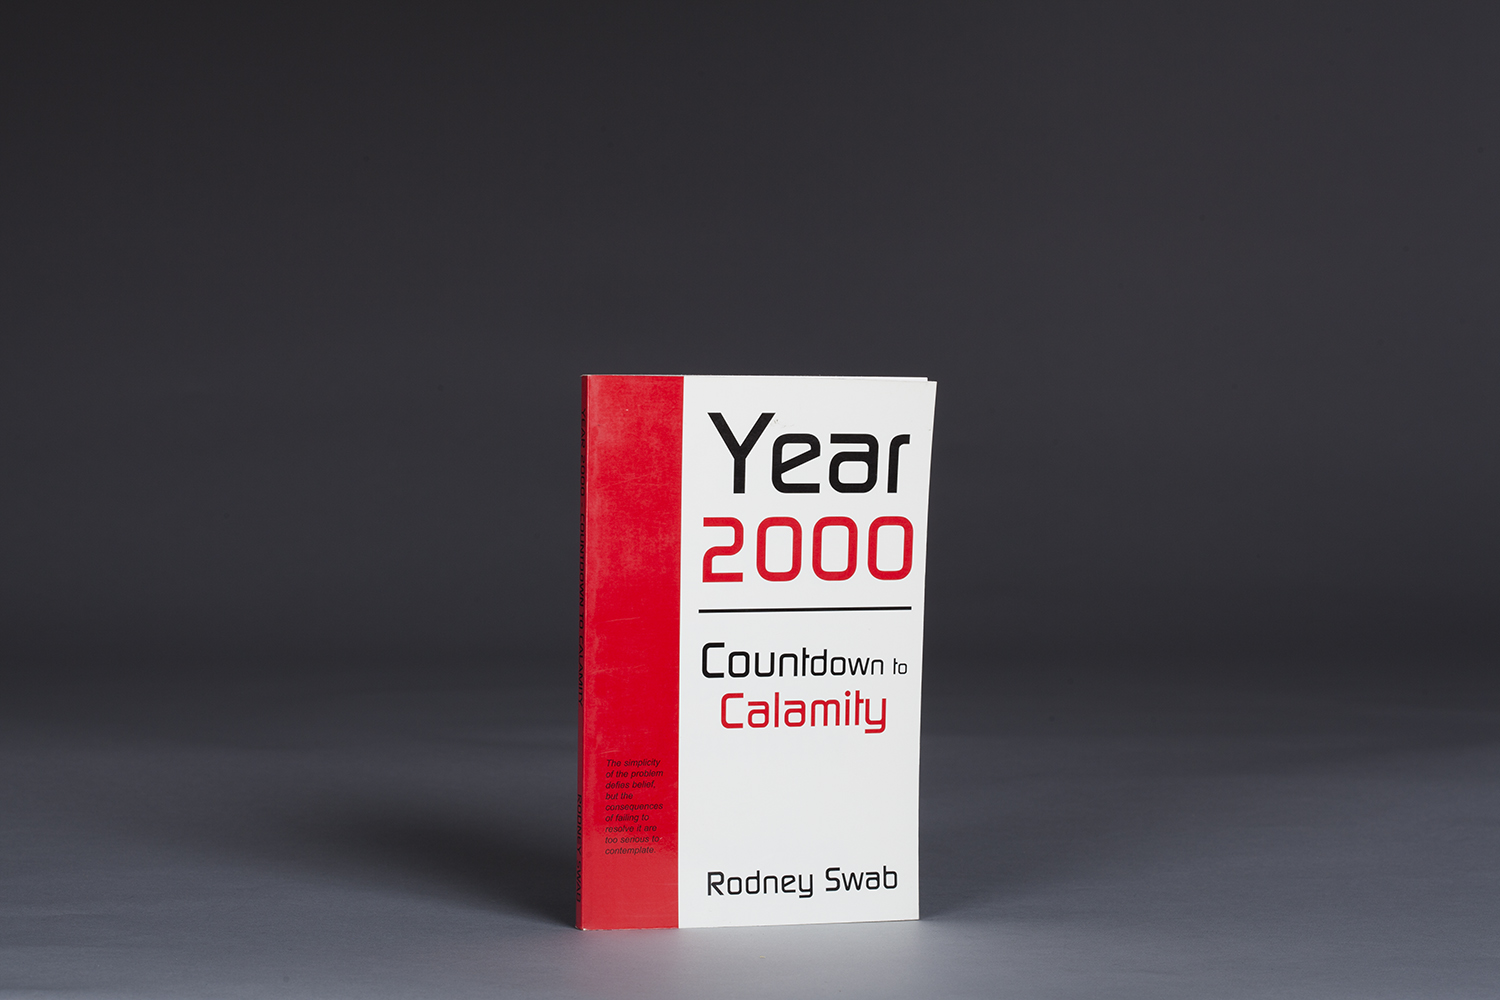 Year 2000 Countdown to Calamity - 9741 Cover.jpg